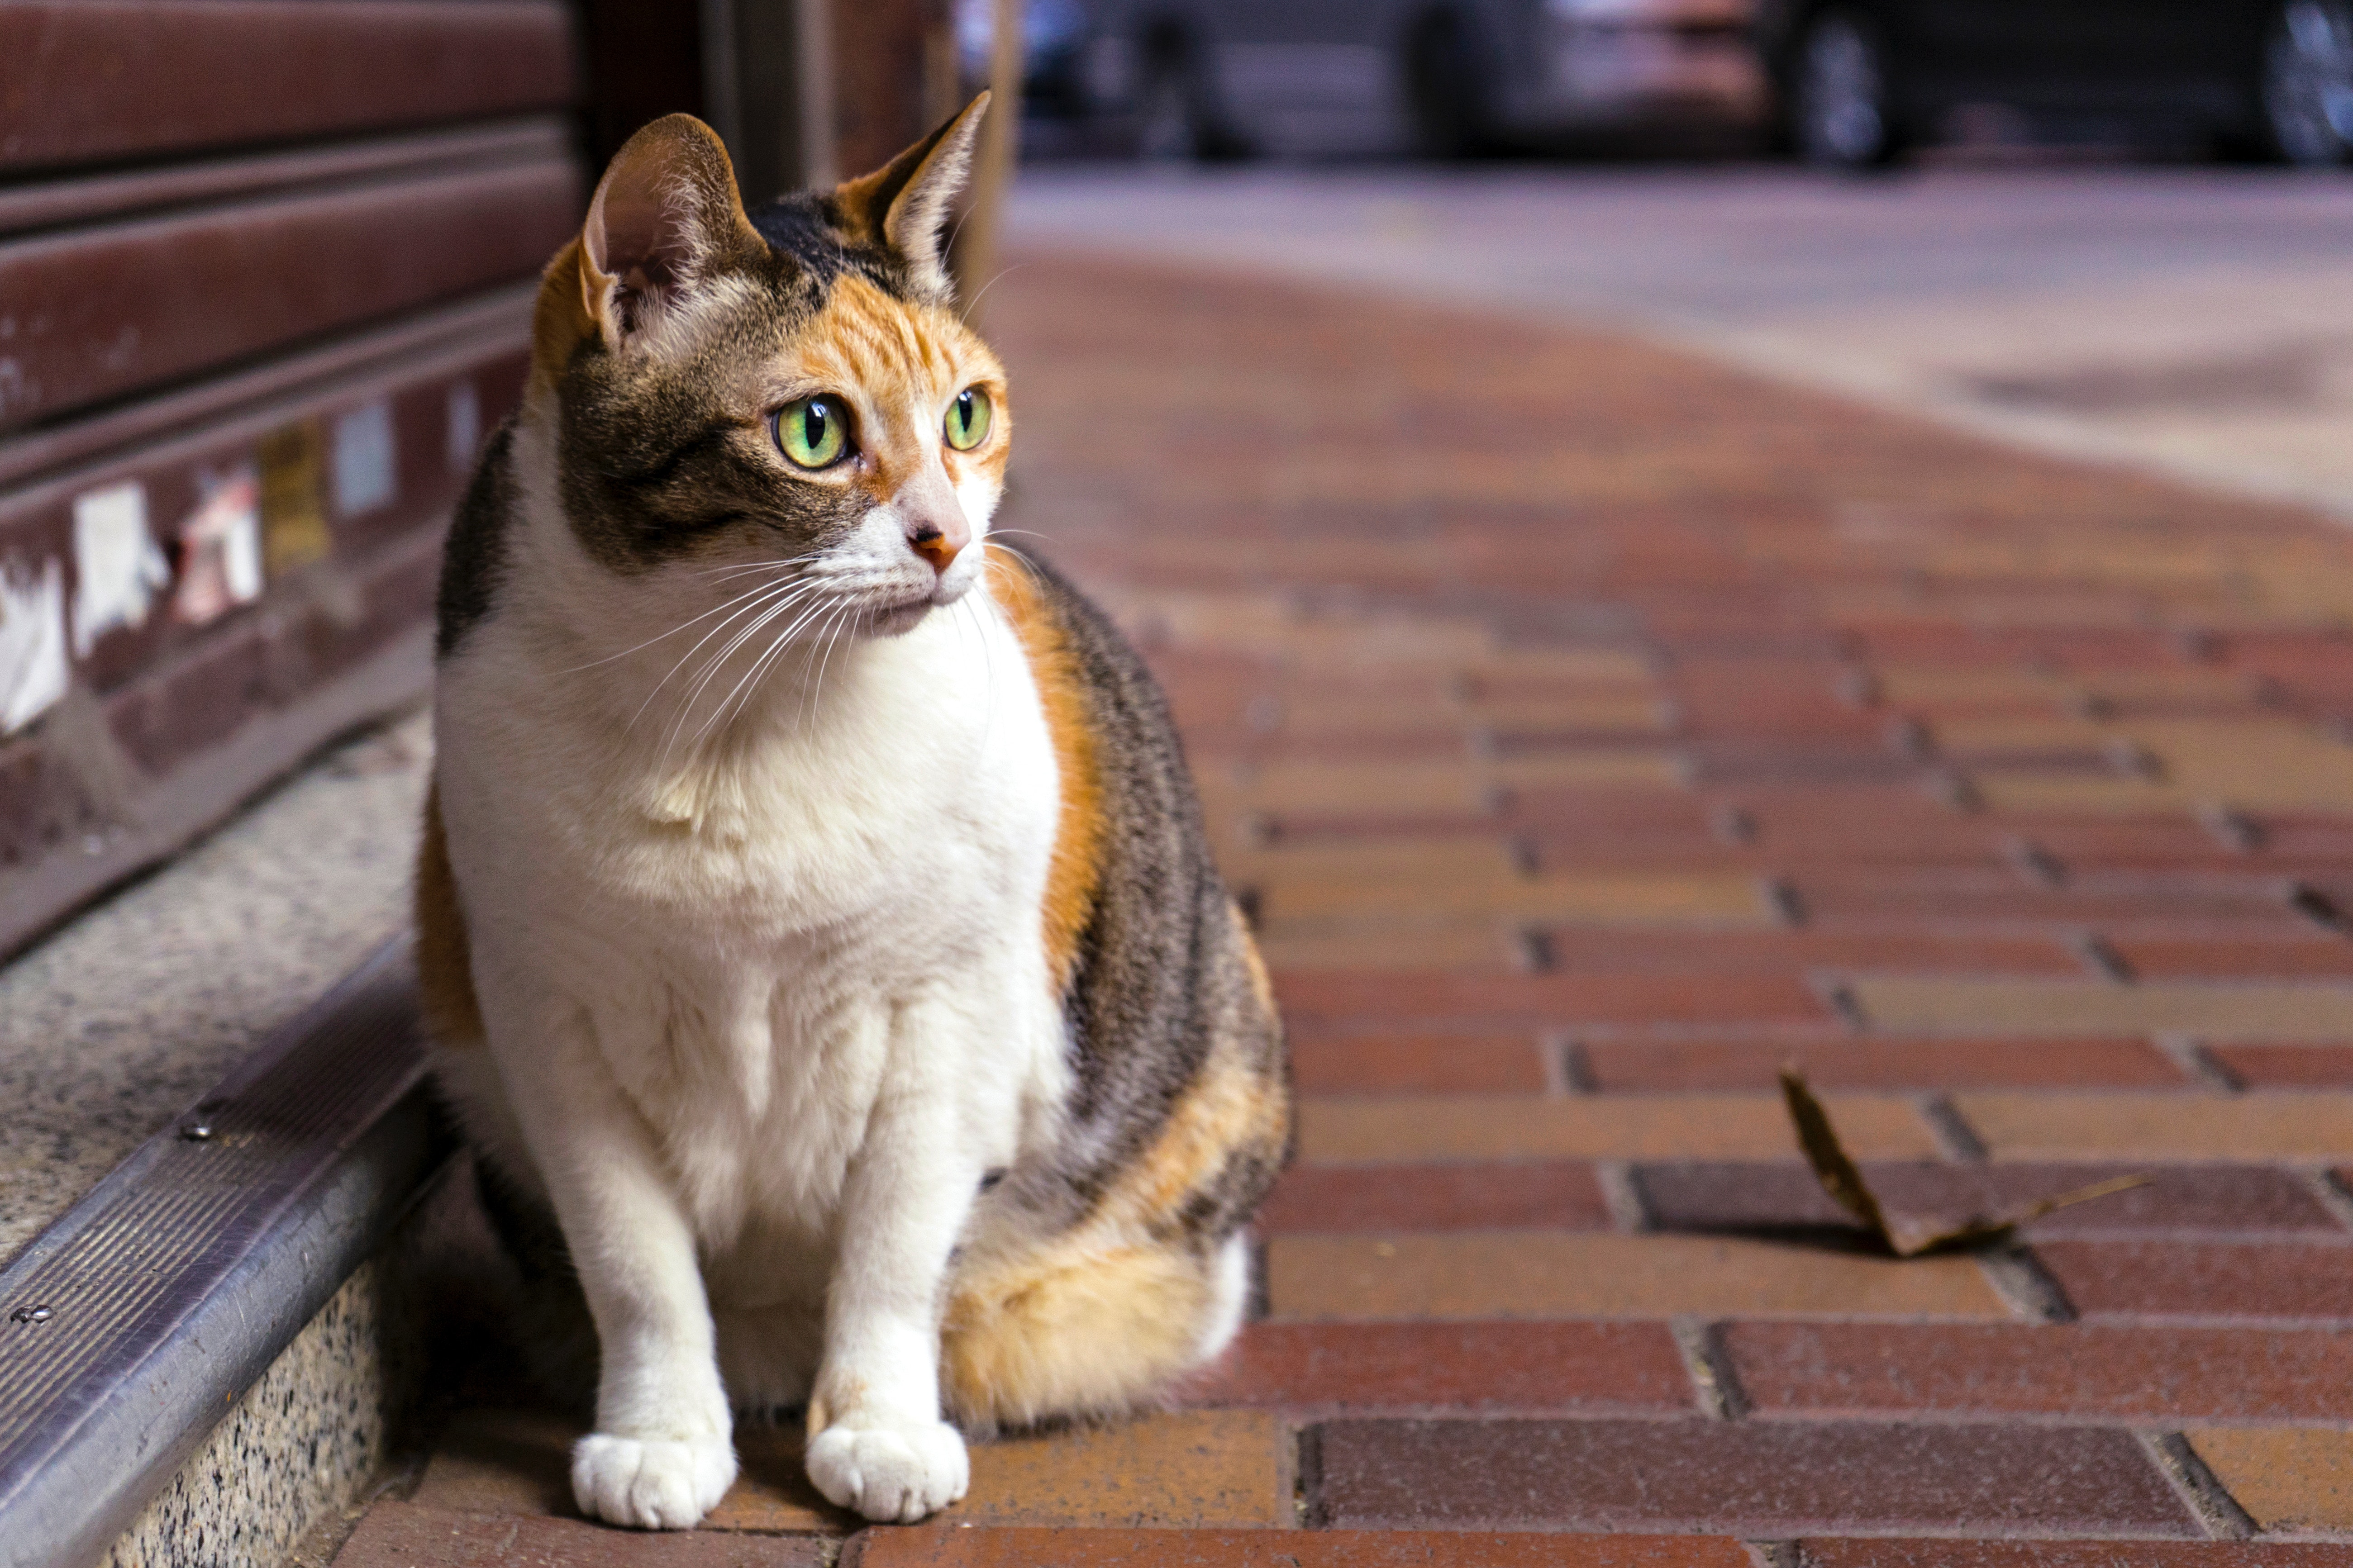 Brown and White Tabby Cat Sitting on Brown Brick Pathway, Animal, Head, Whiskers, Street, HQ Photo